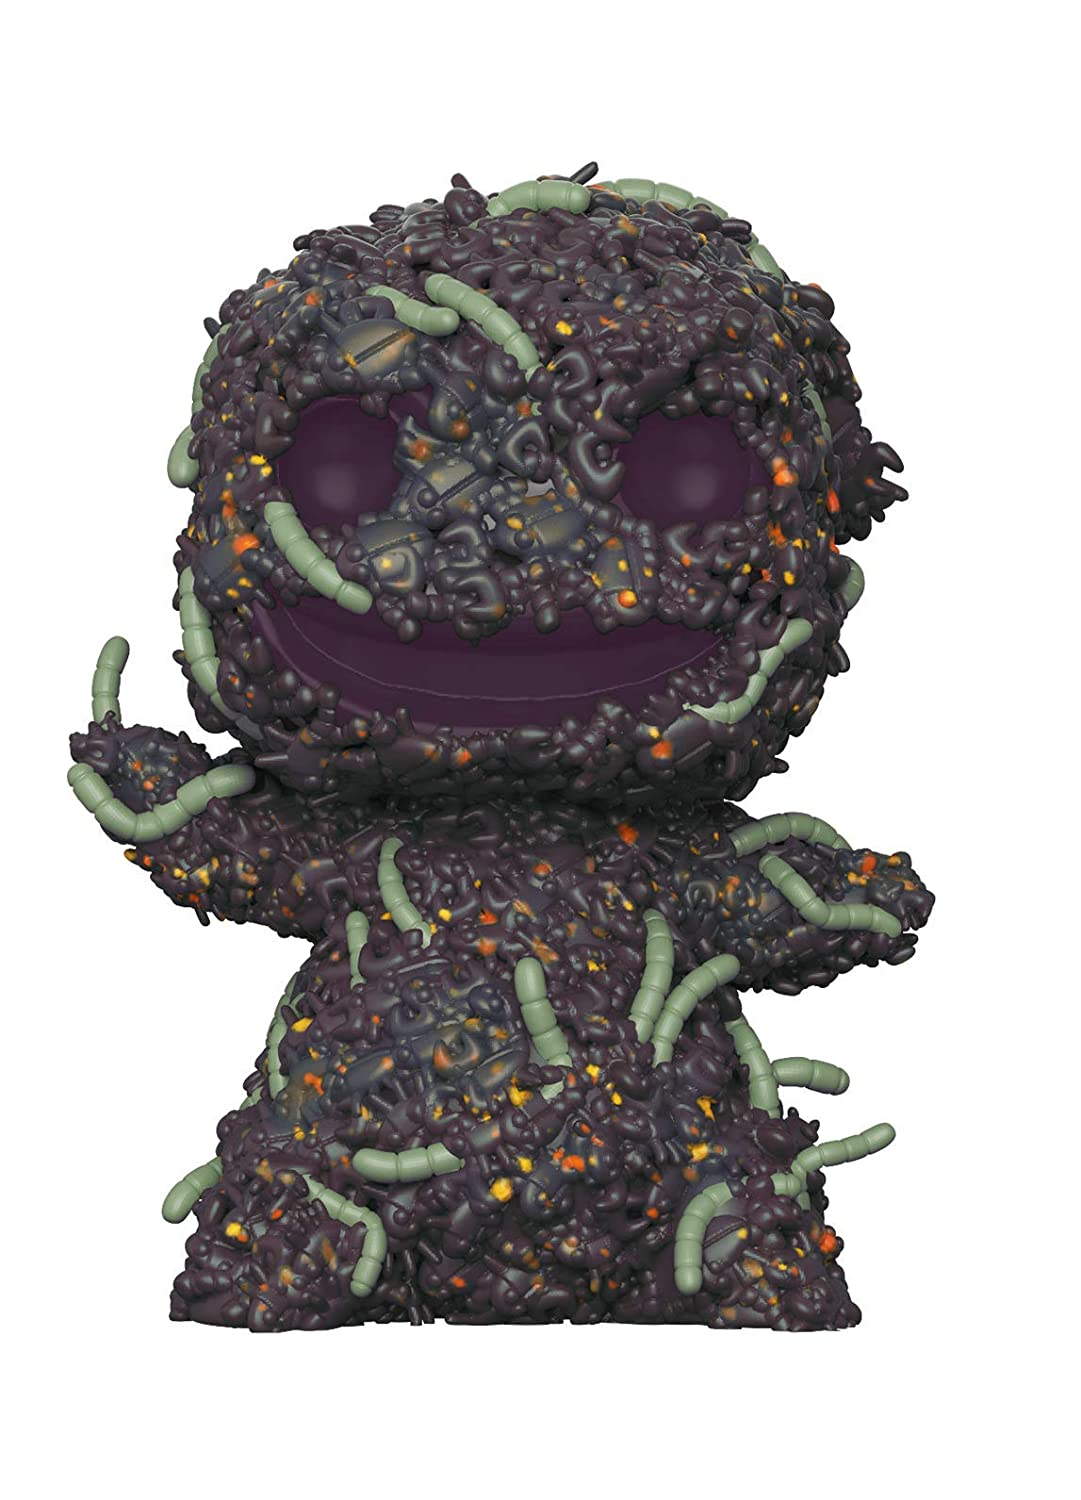 Funko Pop Disney: Nightmare Before Christmas - Oogie Boogie with Bugs Collectible Figure, Multicolor 32838